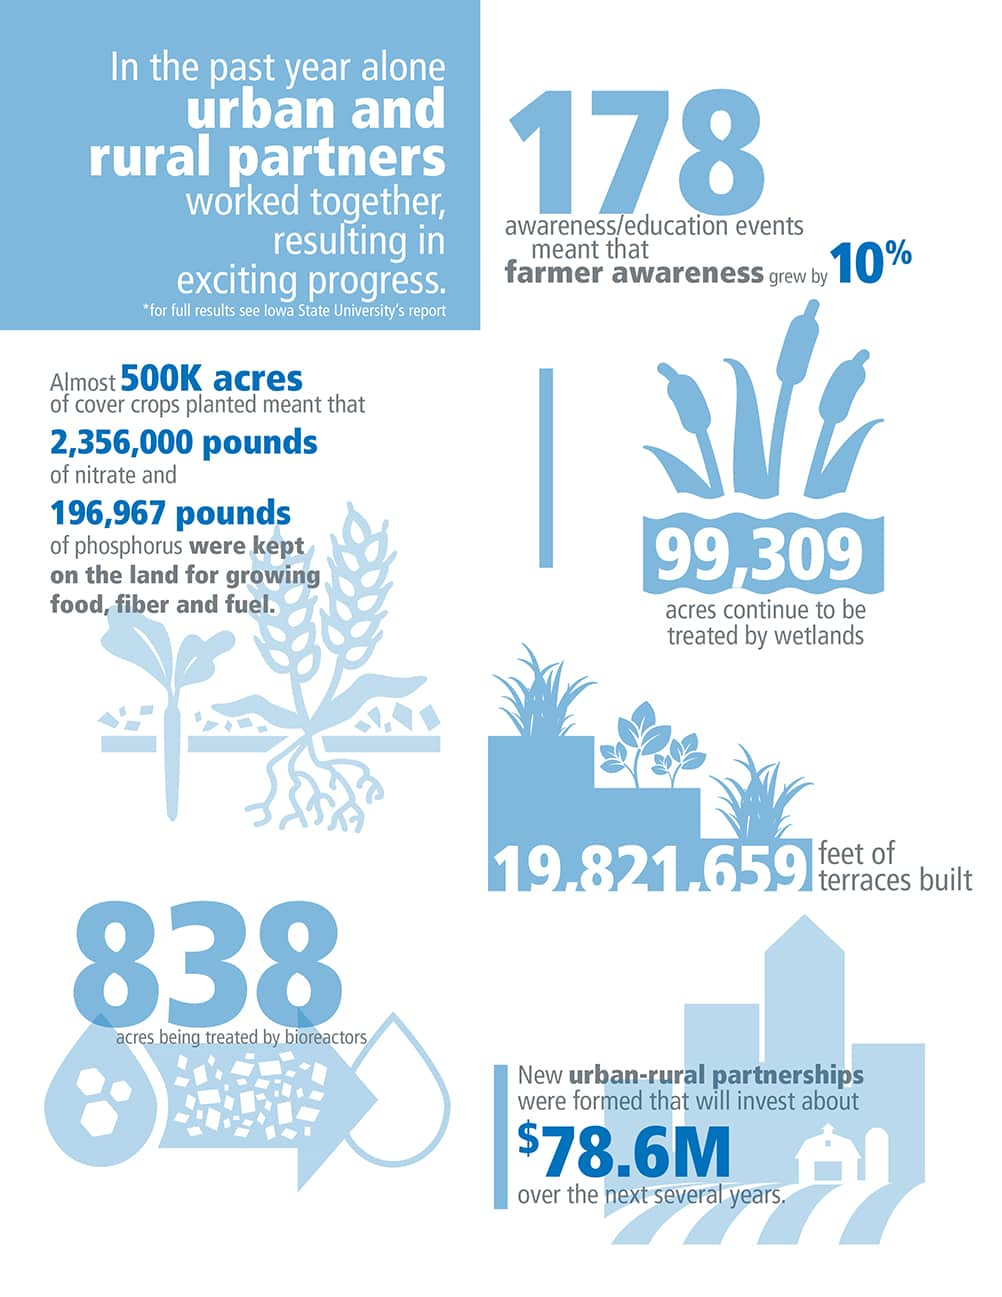 Info-graphic of urban and rural partnership progress in 2016 for water quality in Iowa